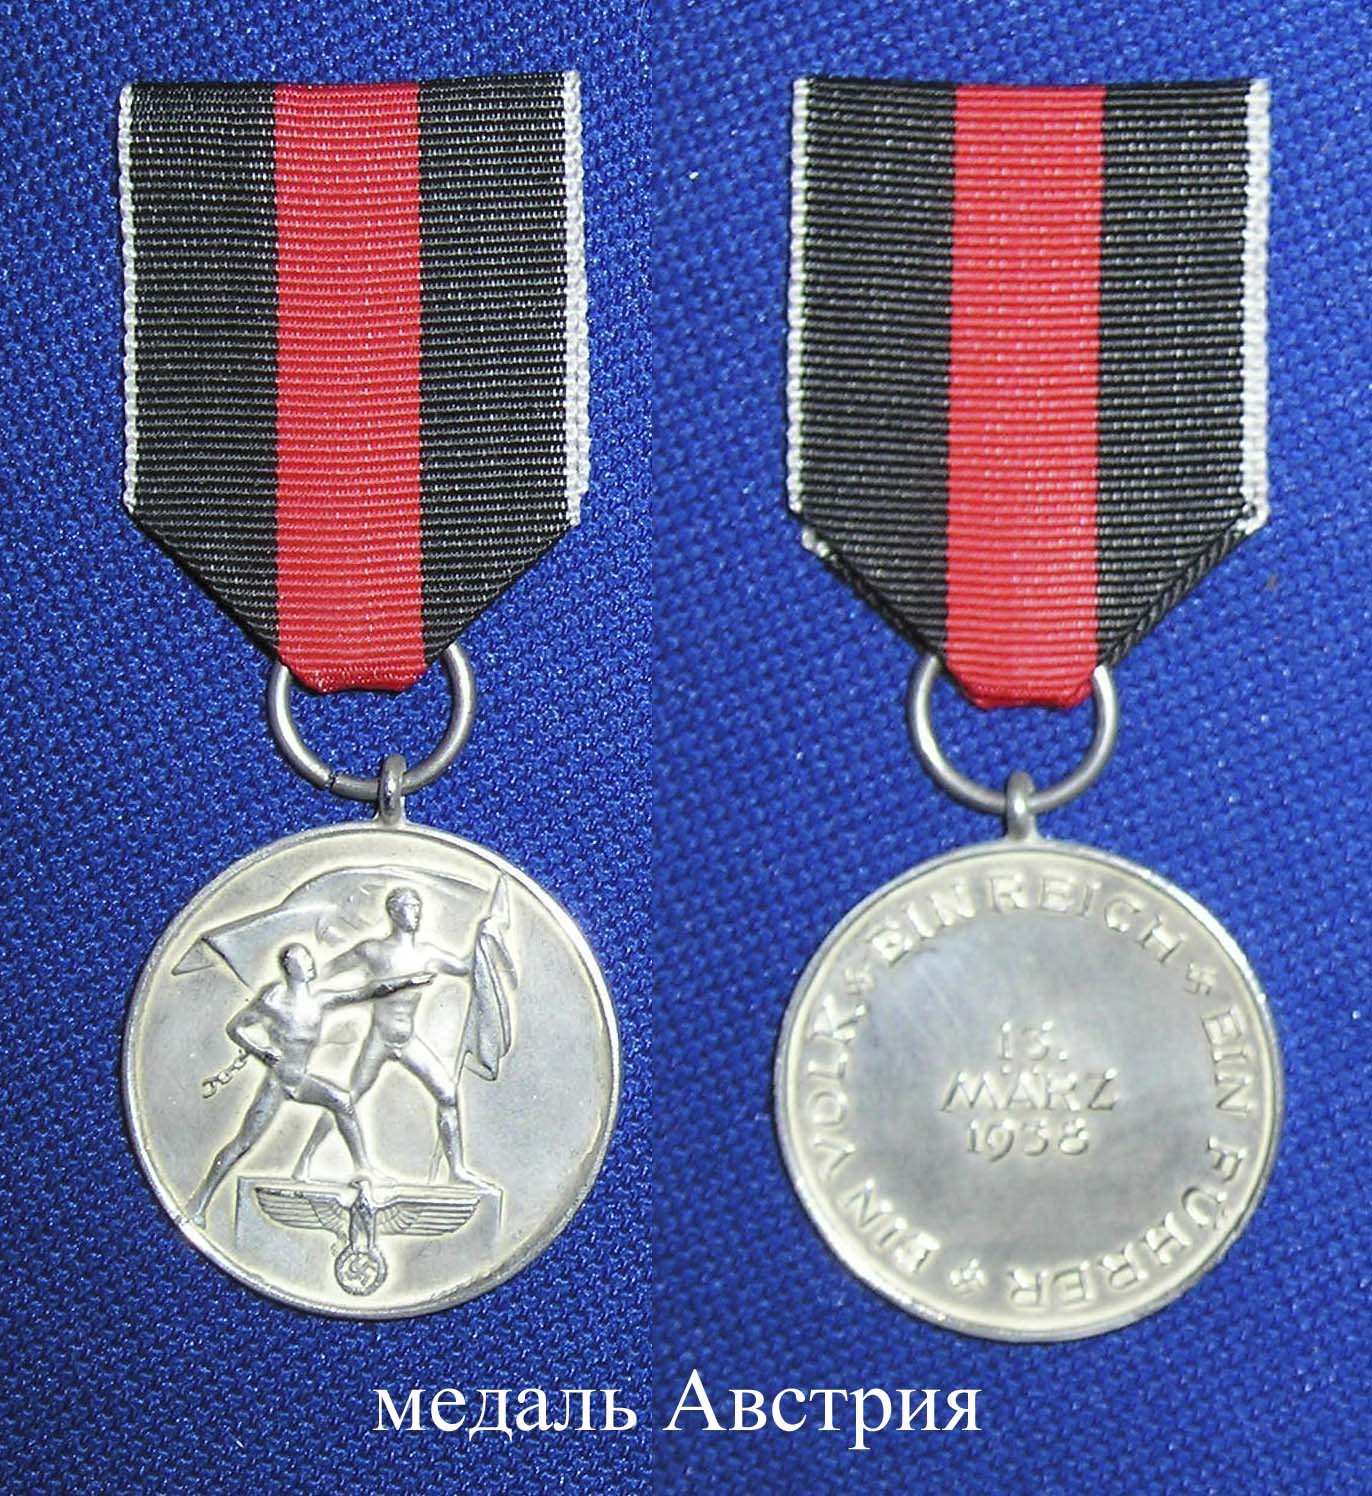 Medal in memory of March 13, 1938